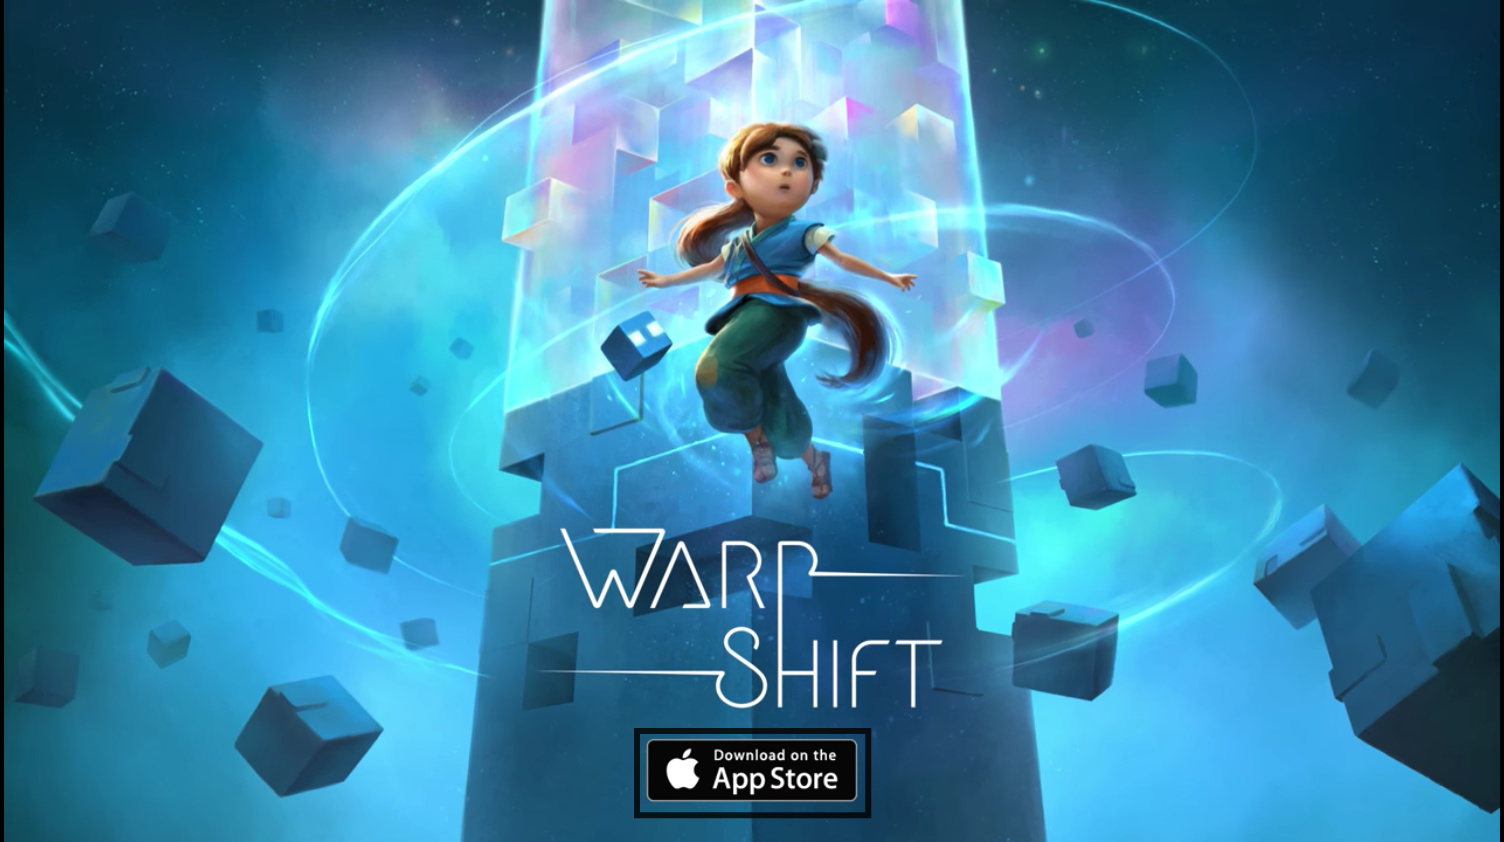 warp-shift-hero